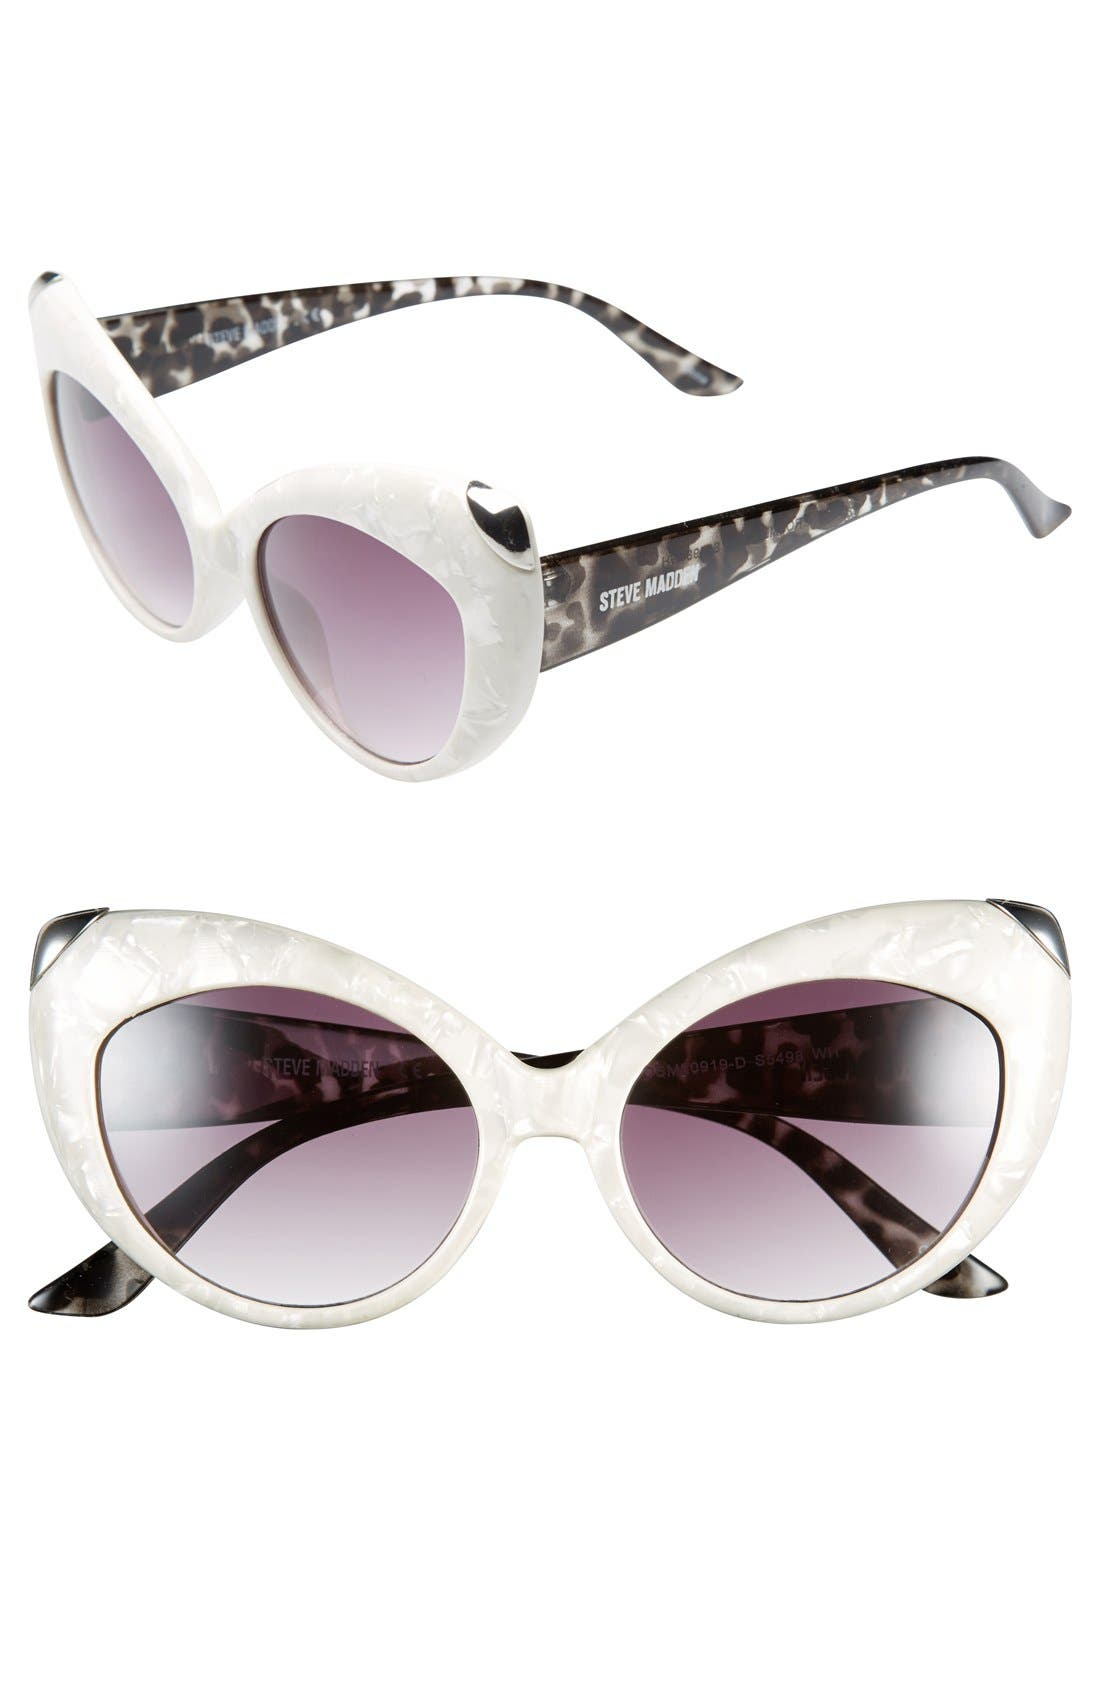 Main Image - Steve Madden 55mm Cat Eye Sunglasses